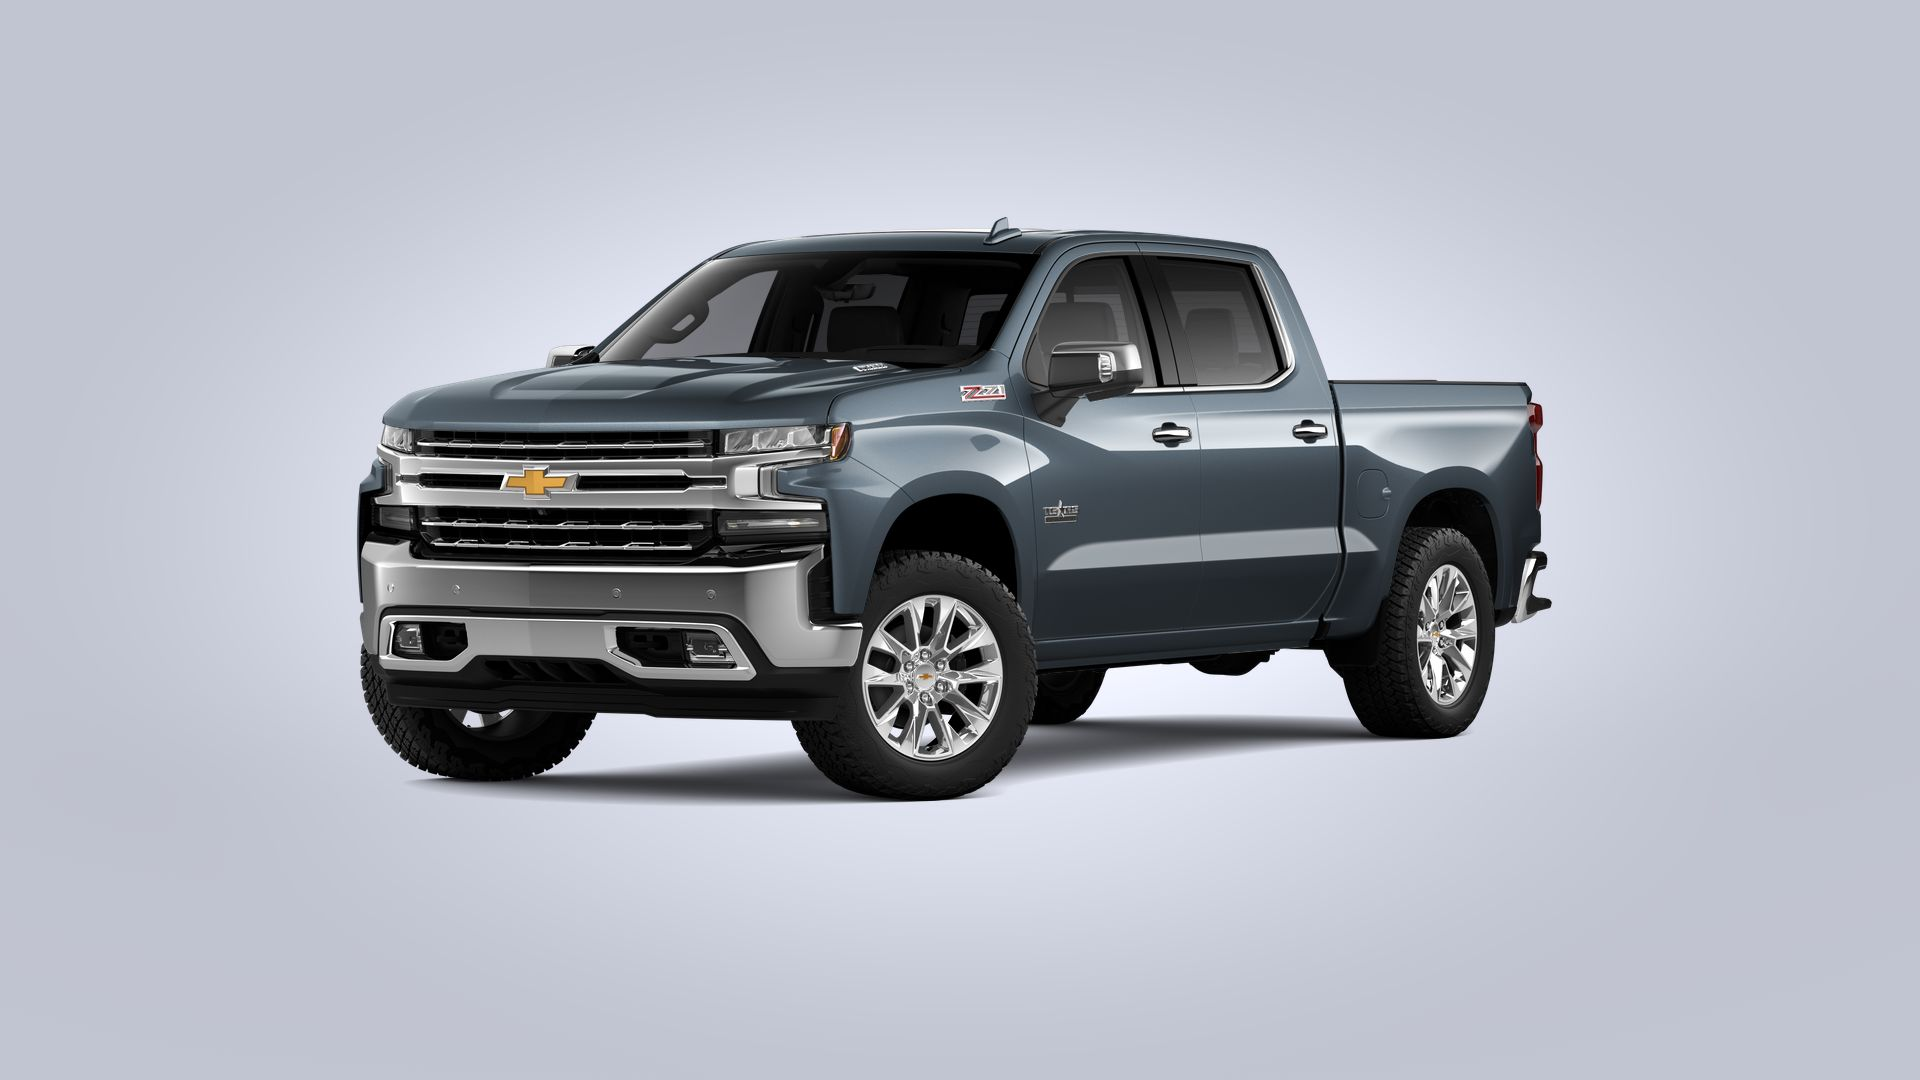 New 2021 Chevrolet Silverado 1500 LTZ FOUR WHEEL DRIVE Crew Cab